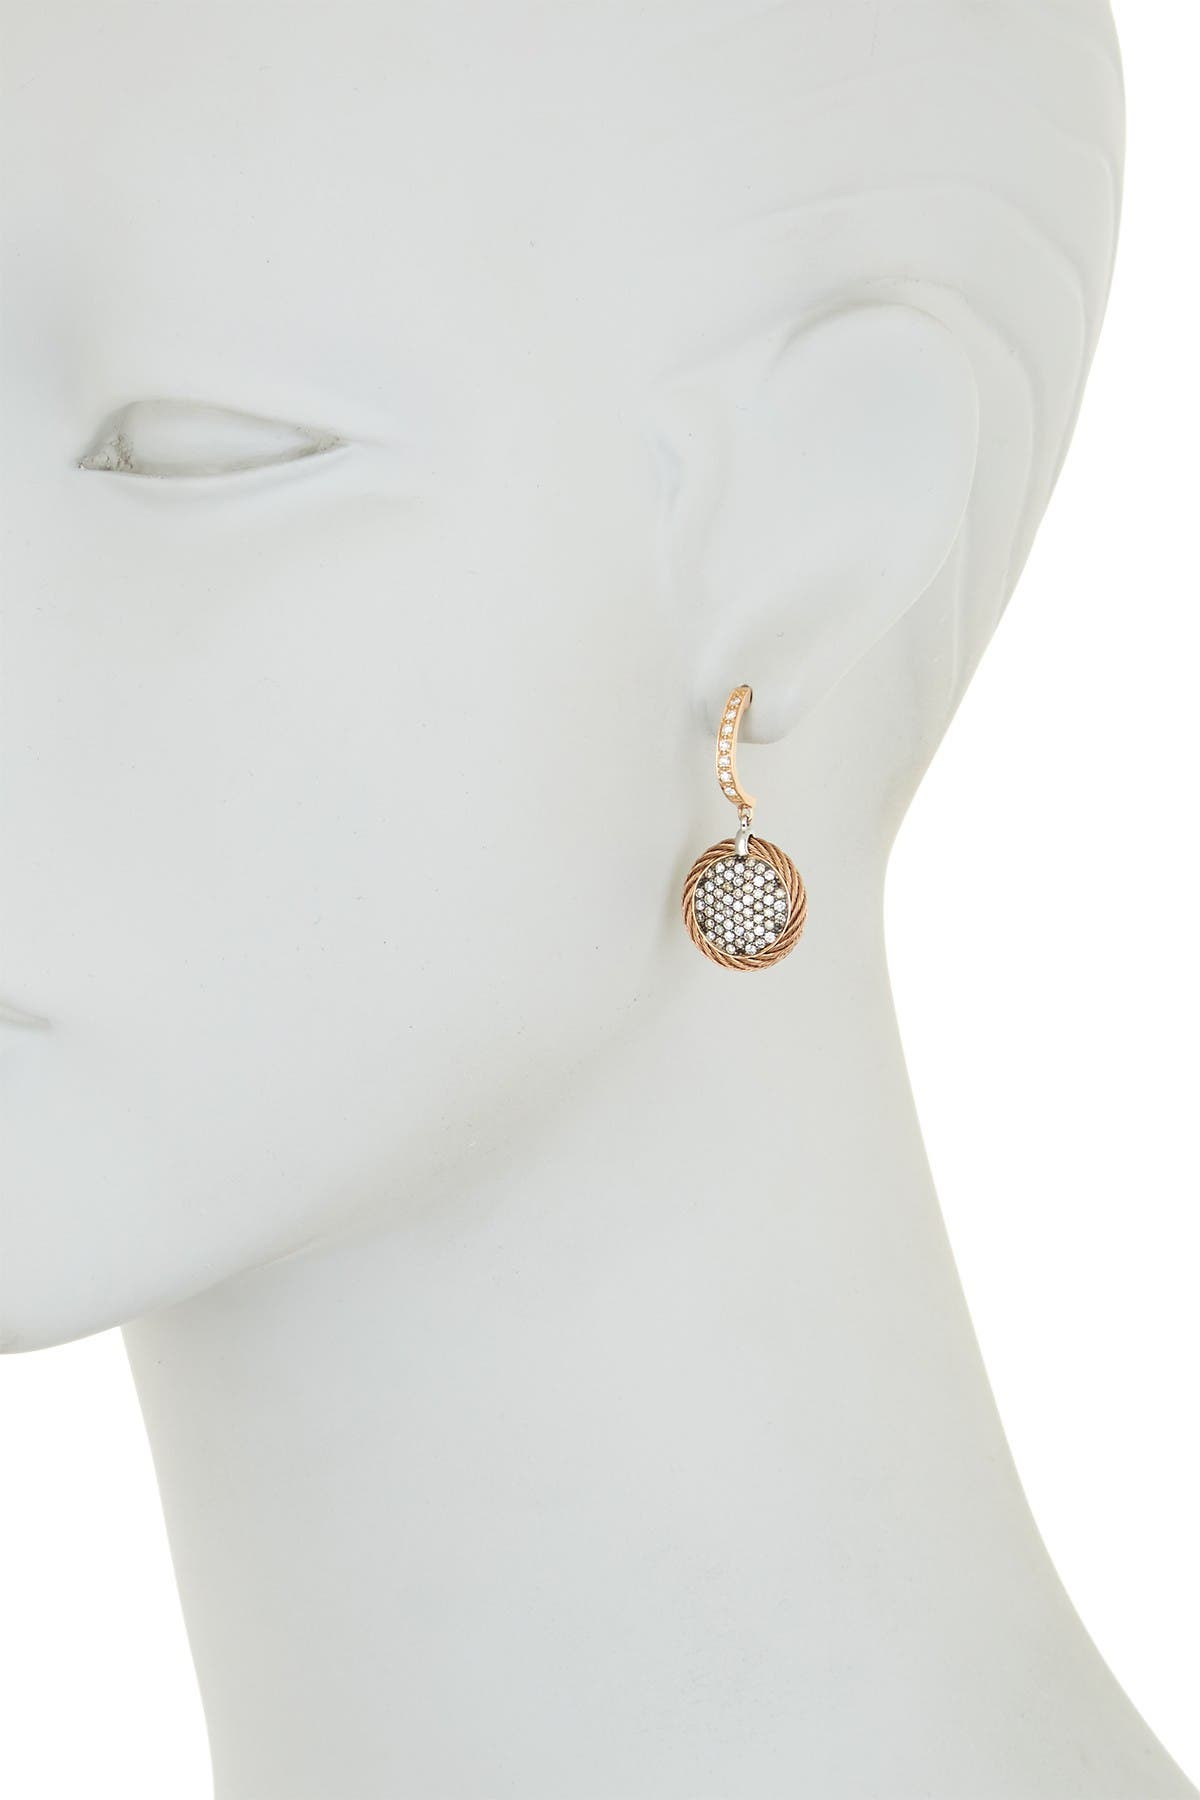 Image of ALOR 18K Rose Gold & Stainless Steel Micro-Cable Diamond Drop Earrings - 1.15 ctw